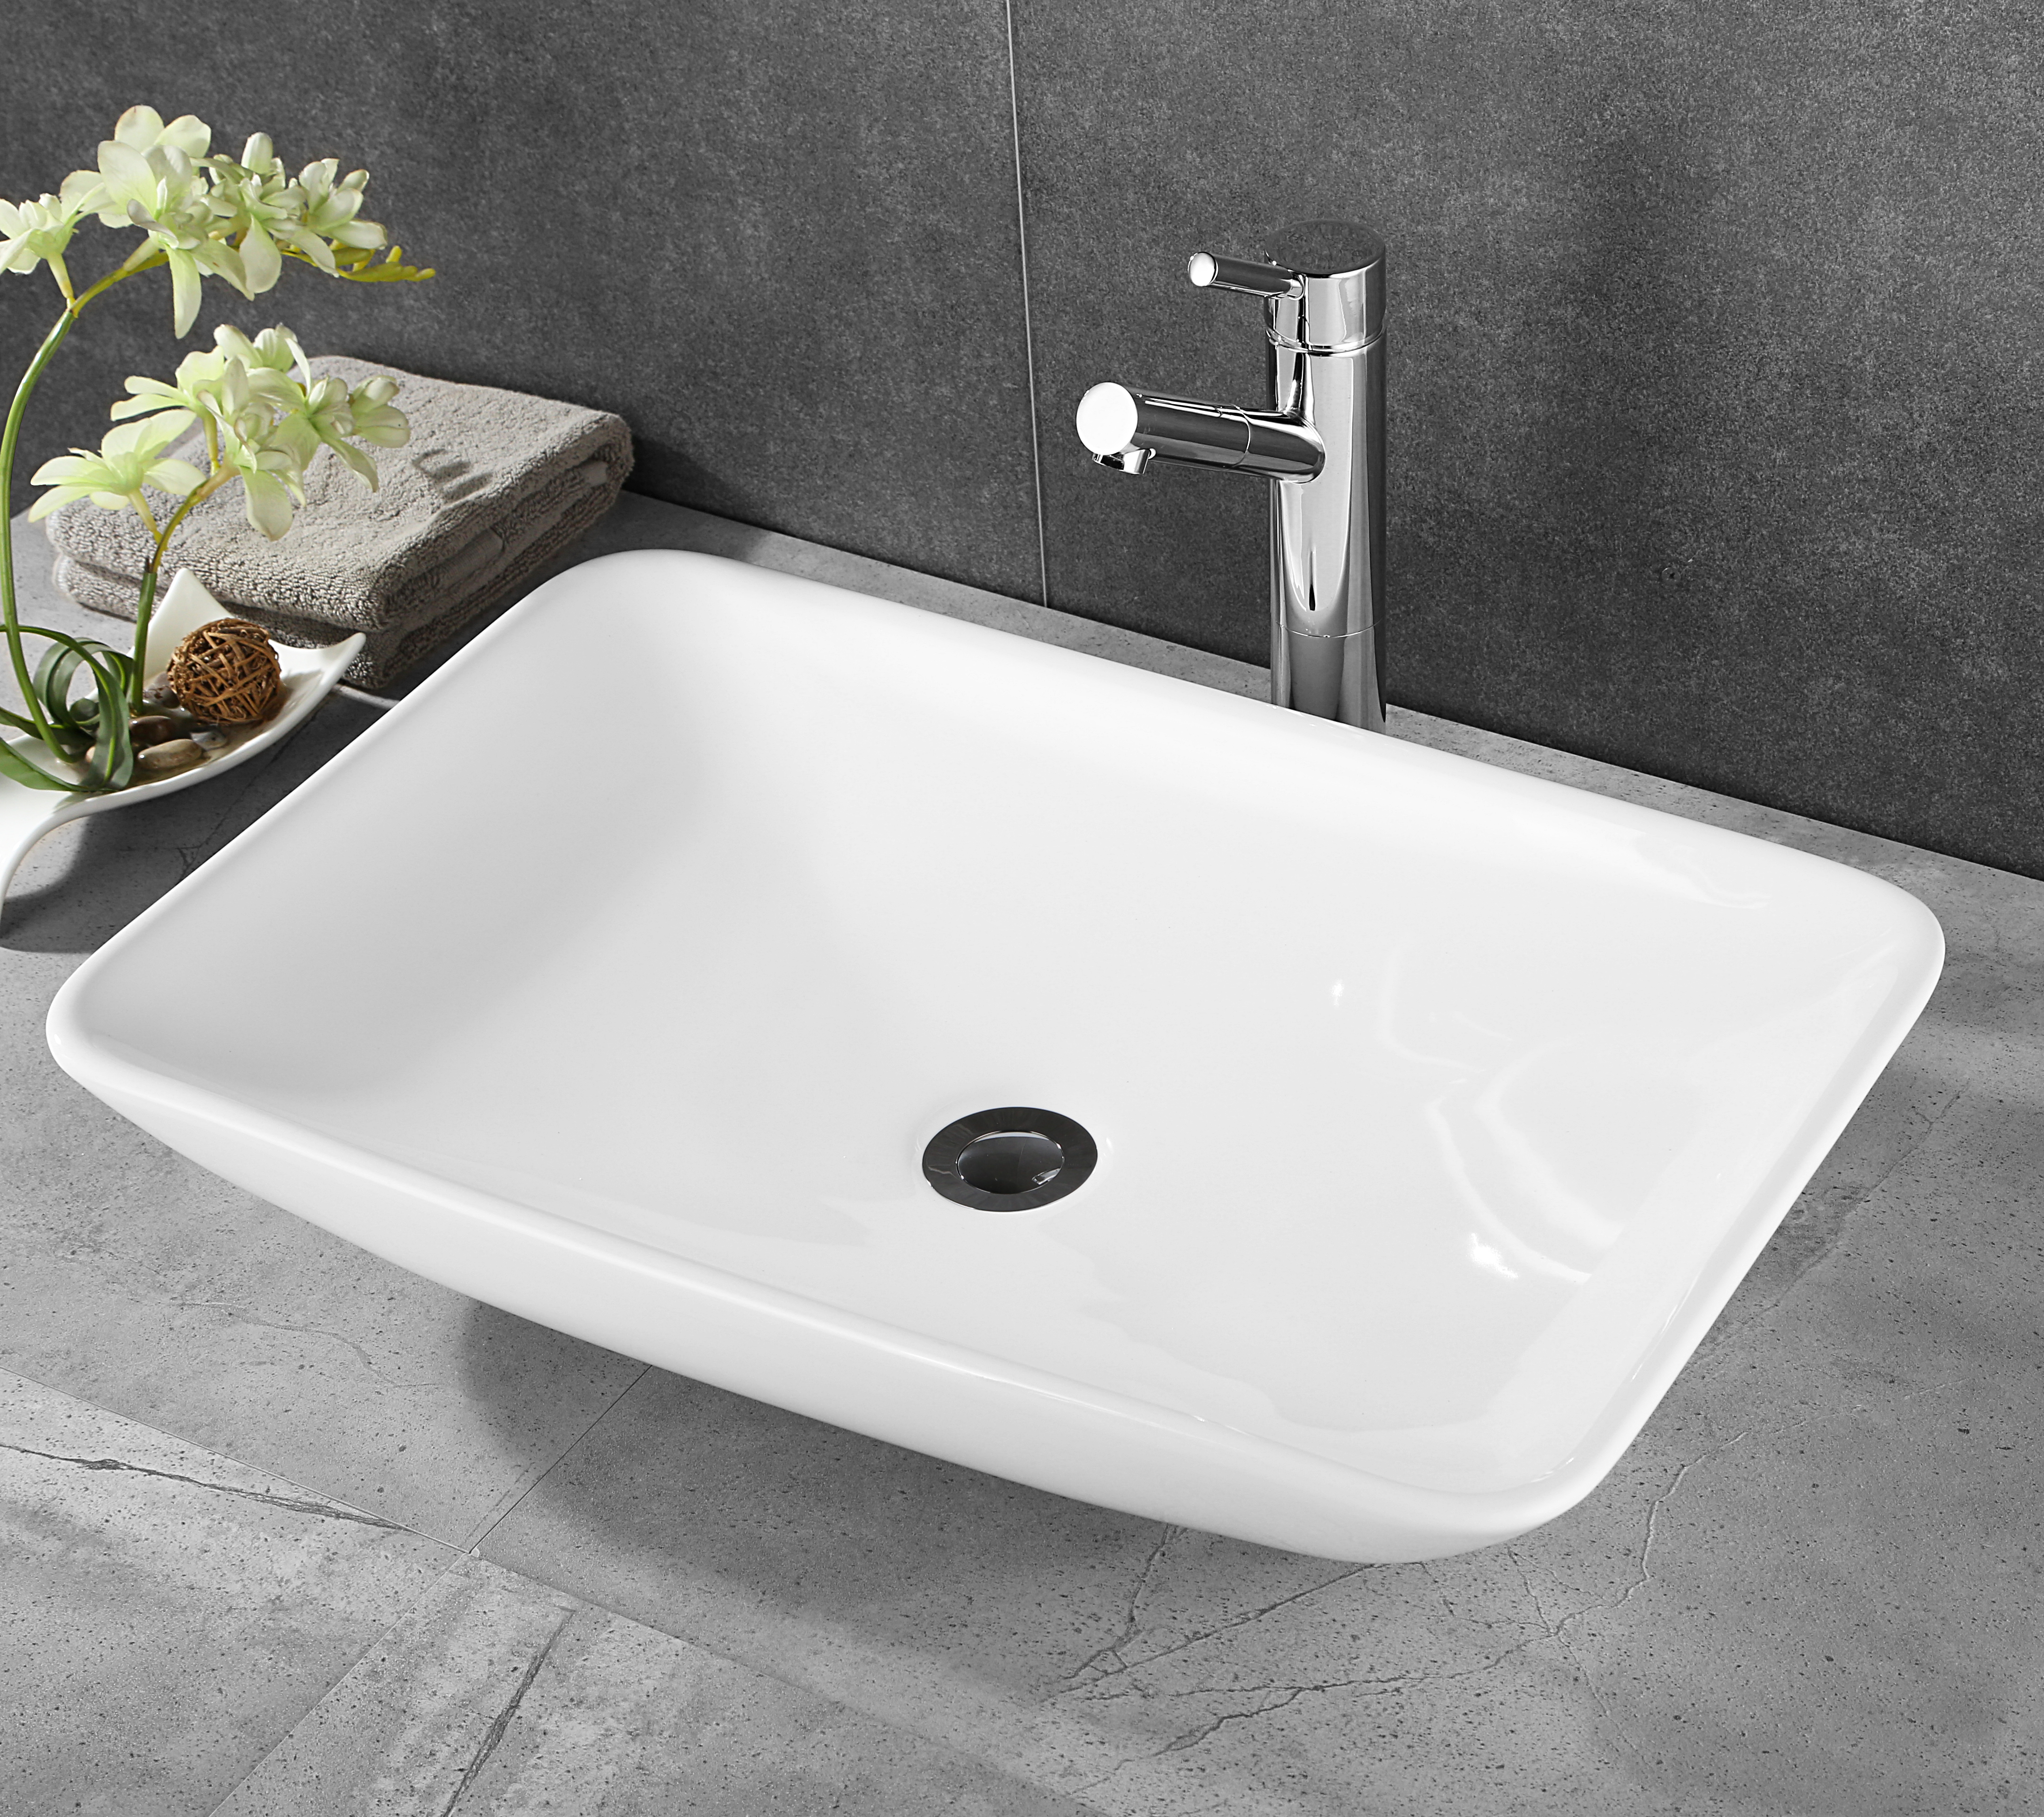 Basin Top Ceramic Wash Basin Bathroom Sink Bowl Gloss Above Counter Top Vanity throughout size 4320 X 3840